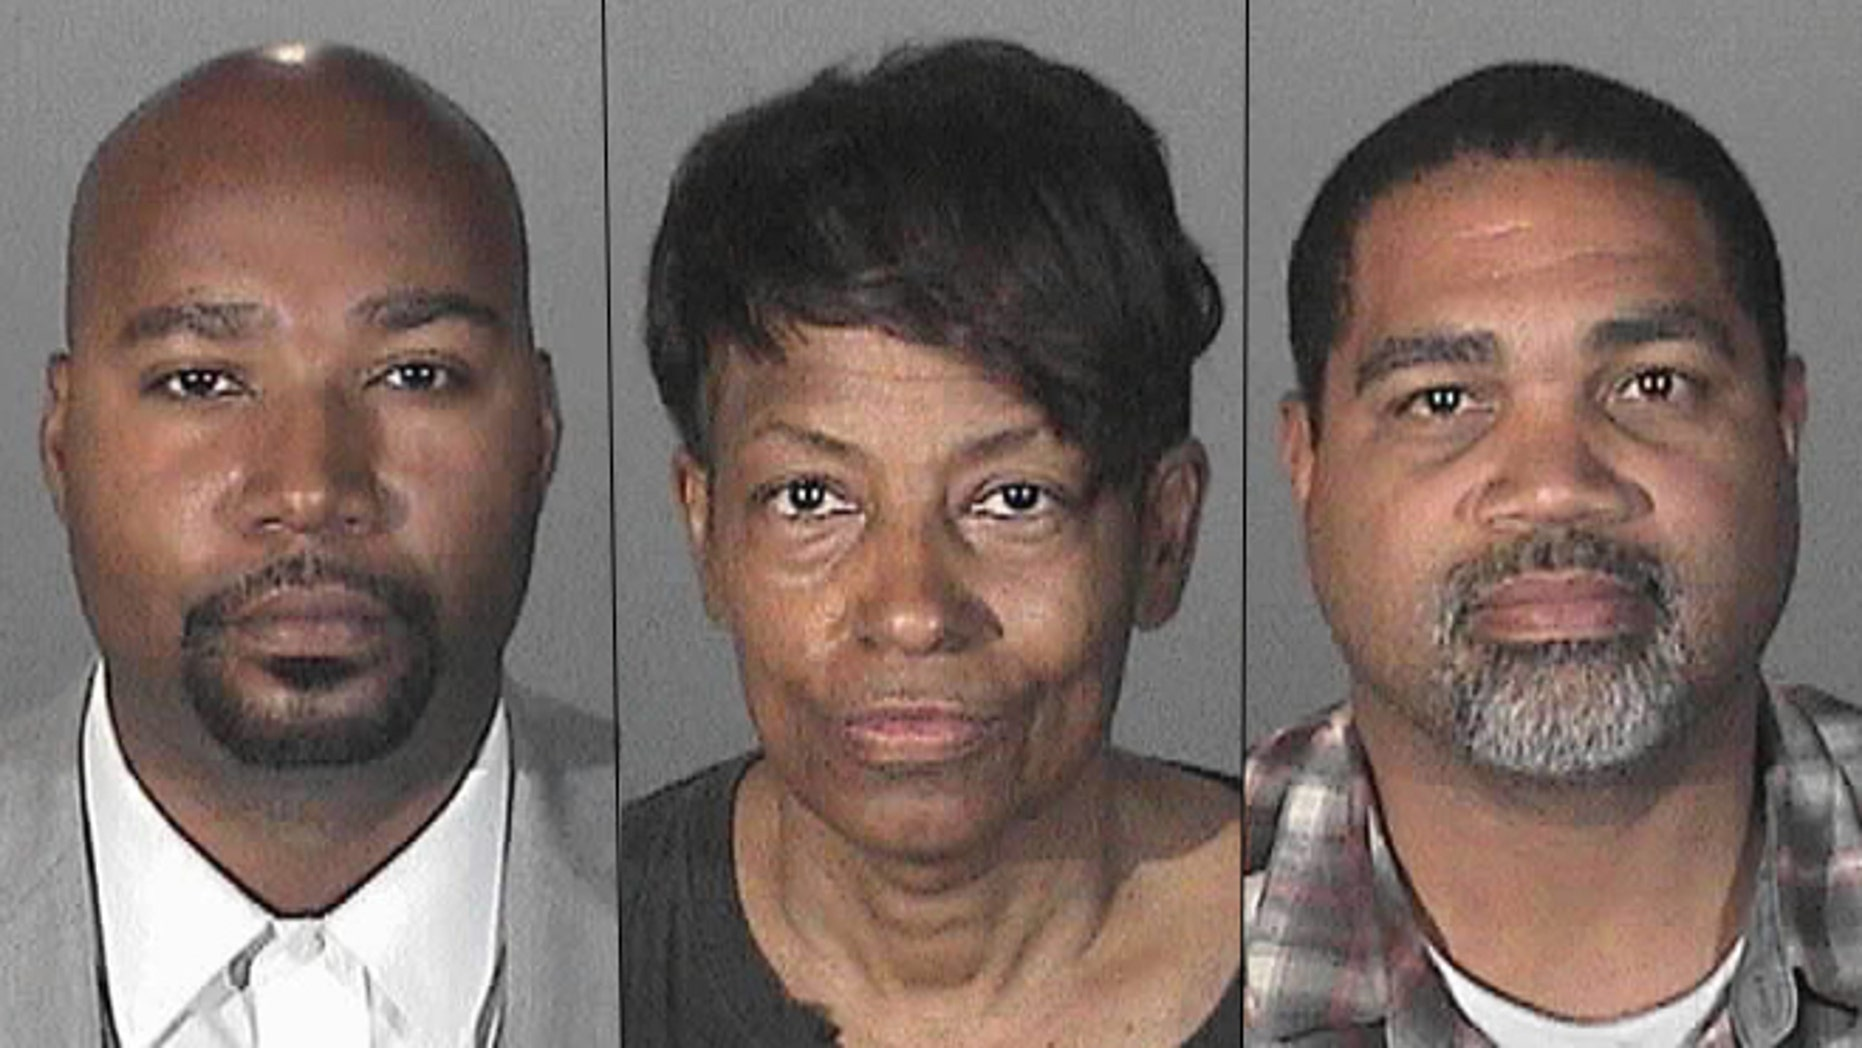 From left, Brandon Kiel, 36, Tonette Hayes, 56, and David Henry, 46. The three were arrested and accused of operating a rogue police force.